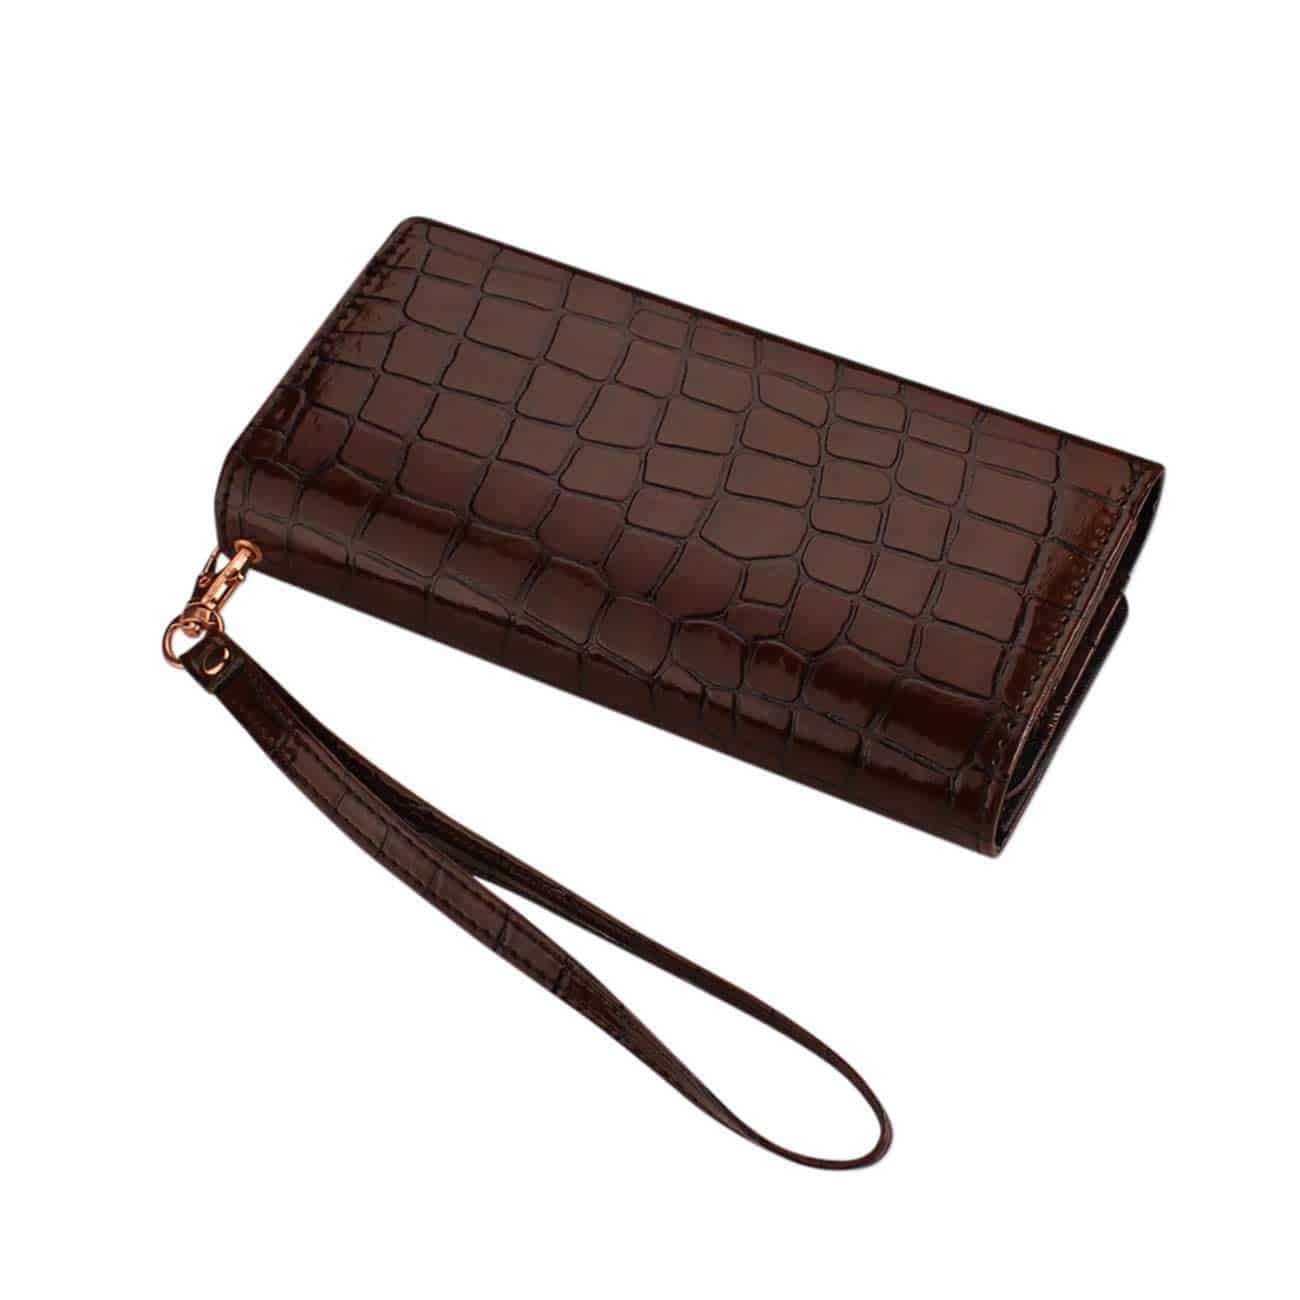 CROCODILE PATTERN PURSE WALLET CASE IN BROWN